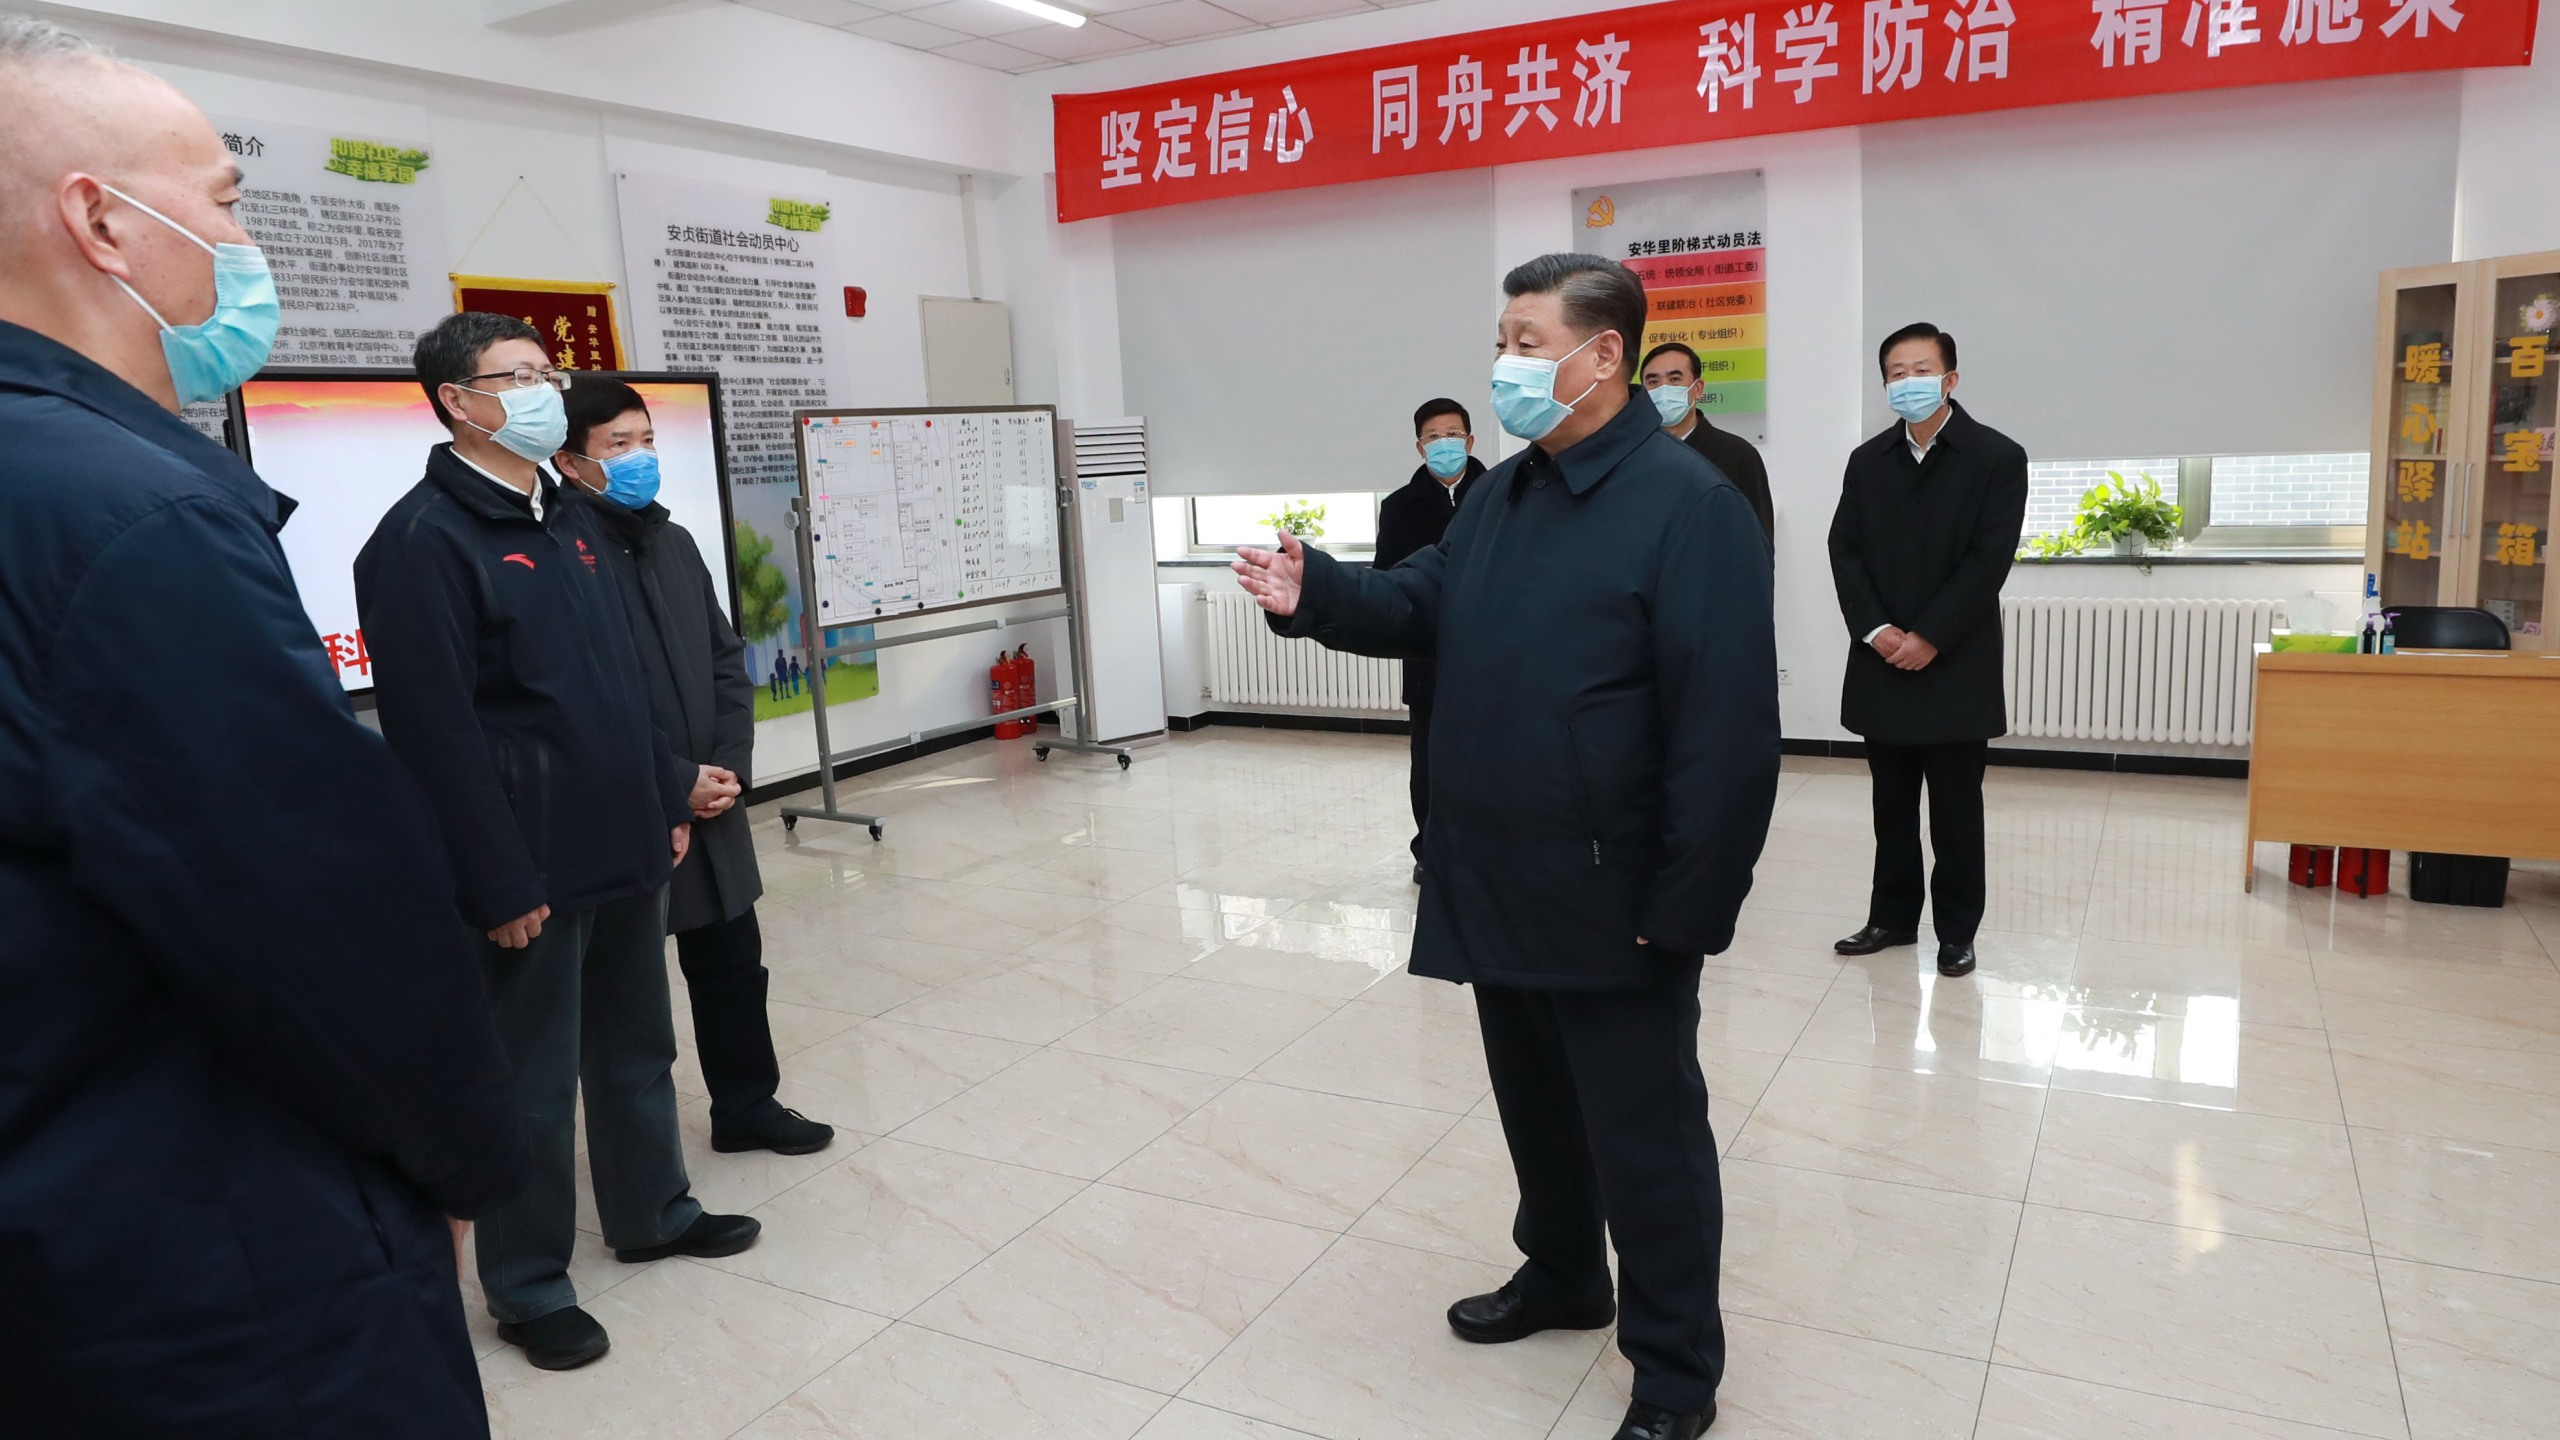 New questions are being raised over just when China understood the potential severity of the novel coronavirus outbreak in Wuhan, and how long the country's leaders sat on critical information that might have helped stave off a global pandemic. (Pang Xinglei/Xinhua News Agency/Getty Images)